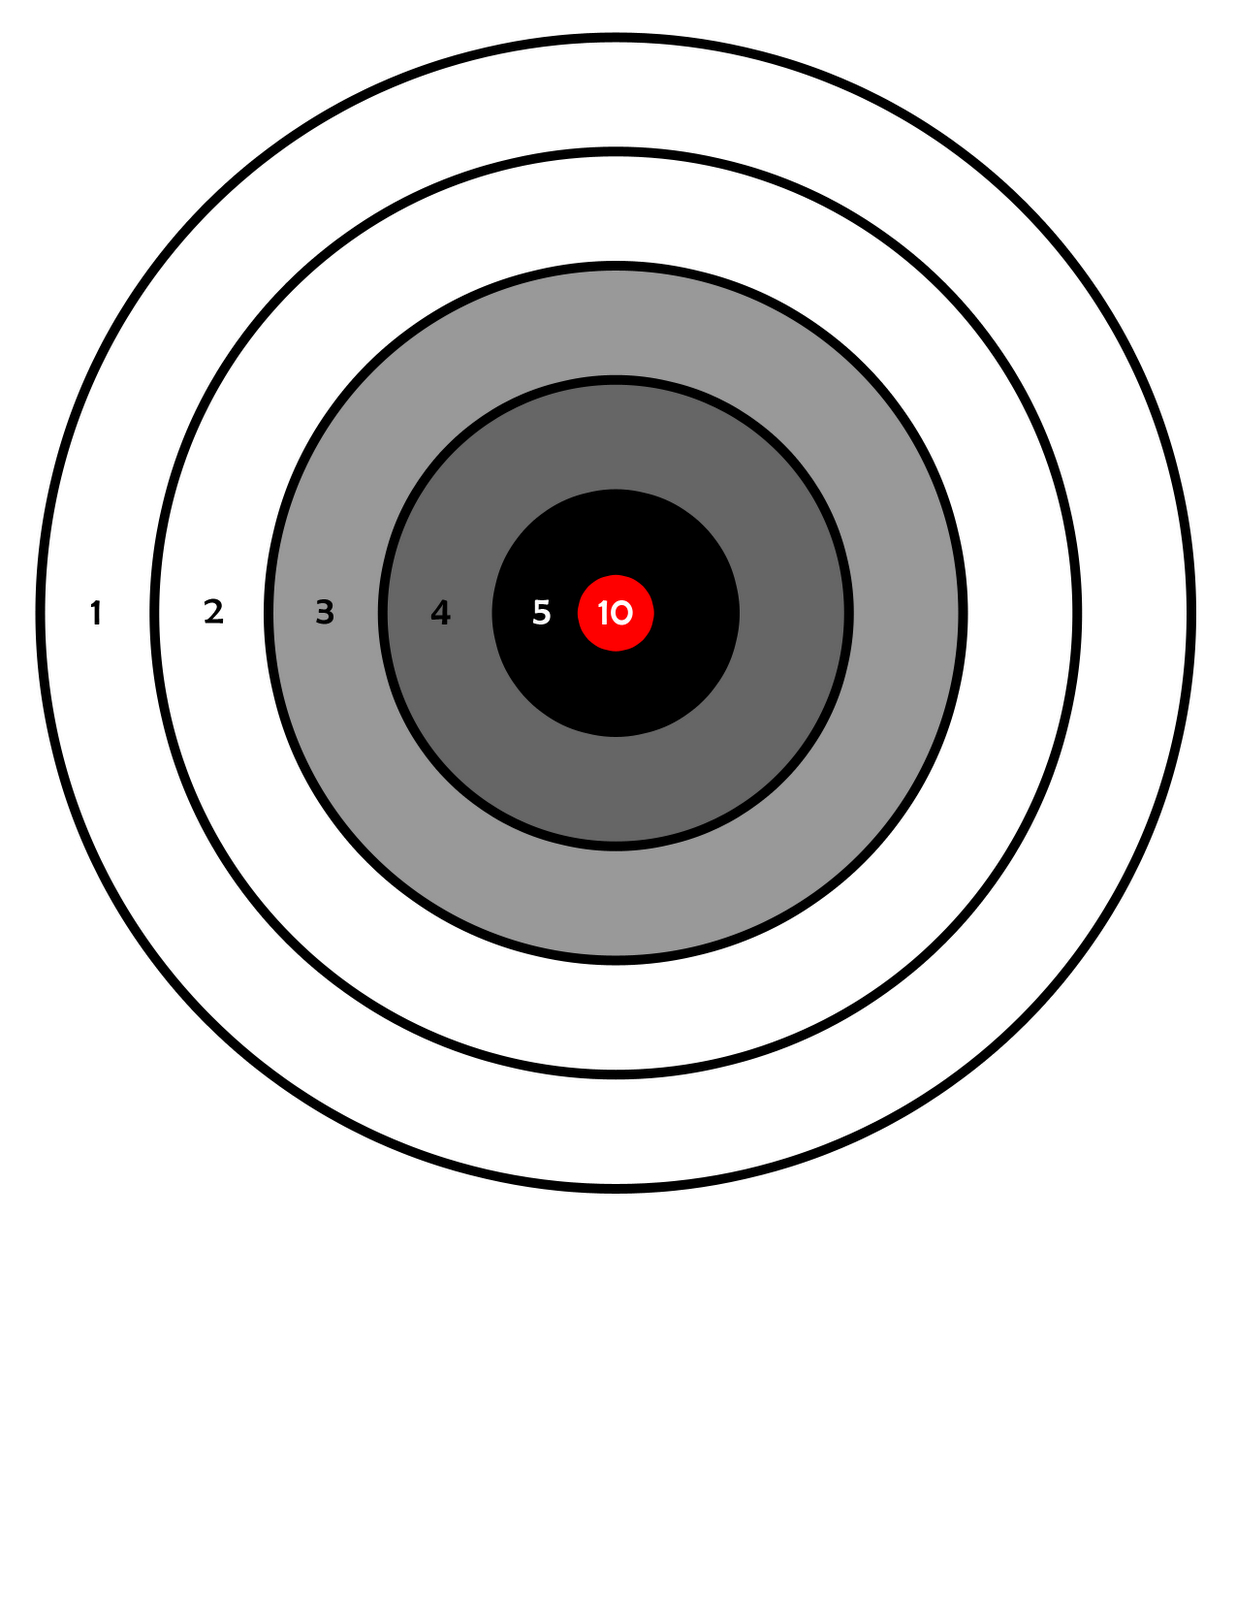 411Toys: Free Printable Airsoft Targets Including Zombies | A - Free Printable Targets